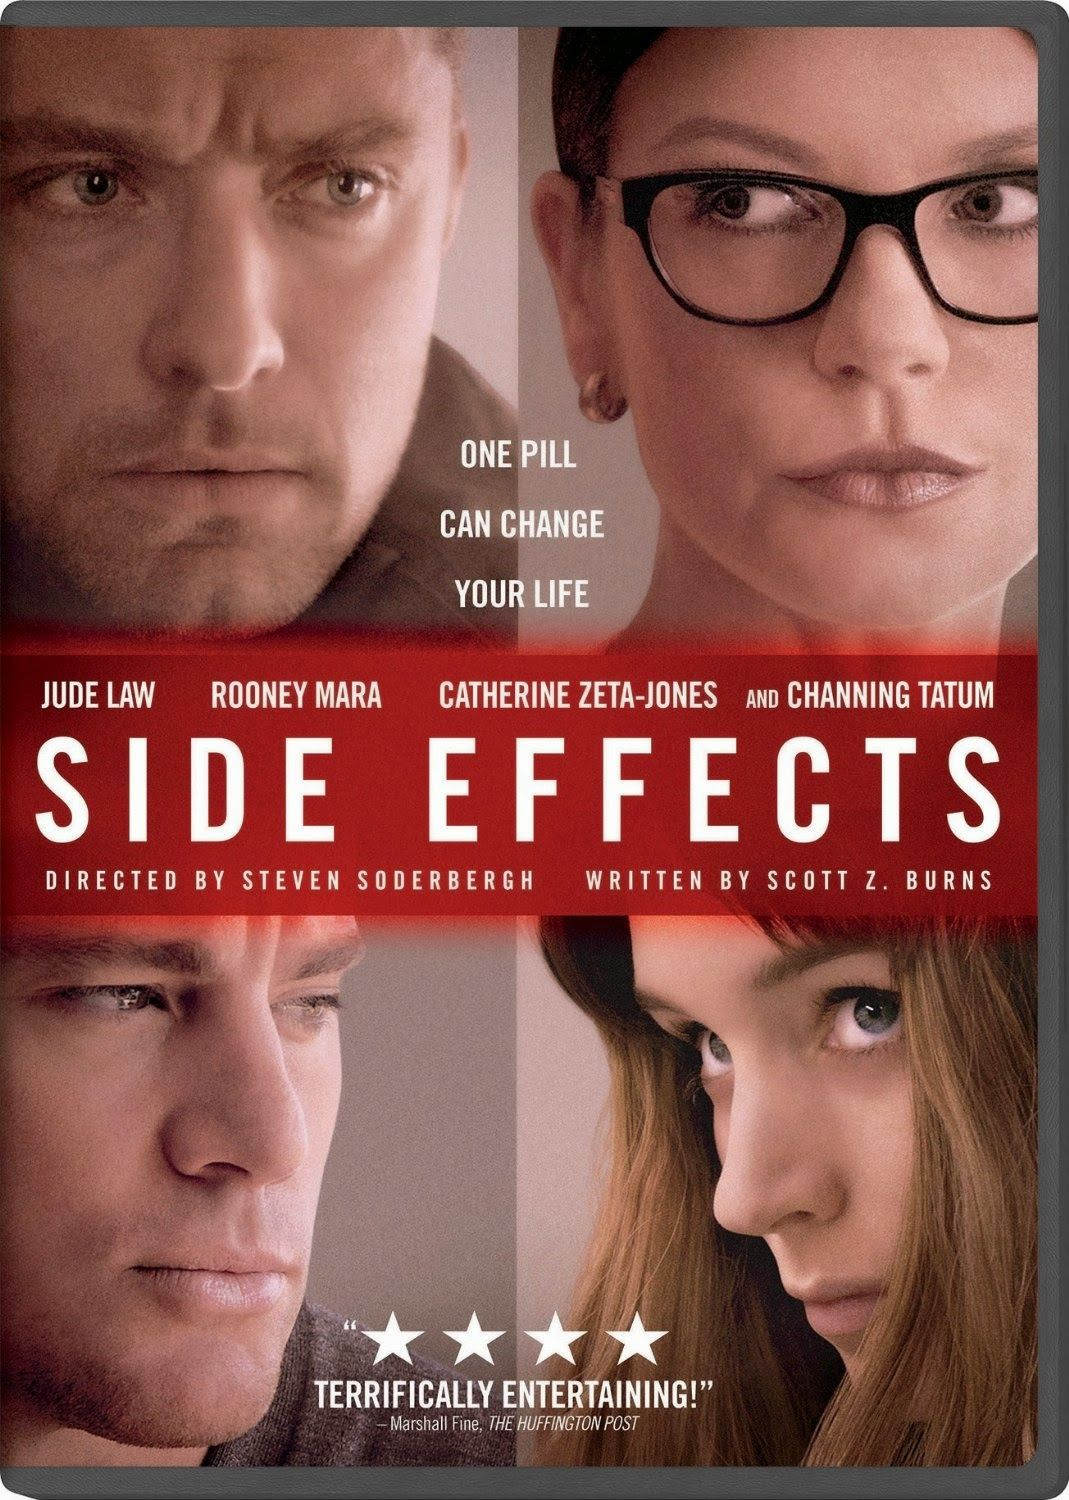 side effects starring jude law, catherine zeta-jones, channing tatum